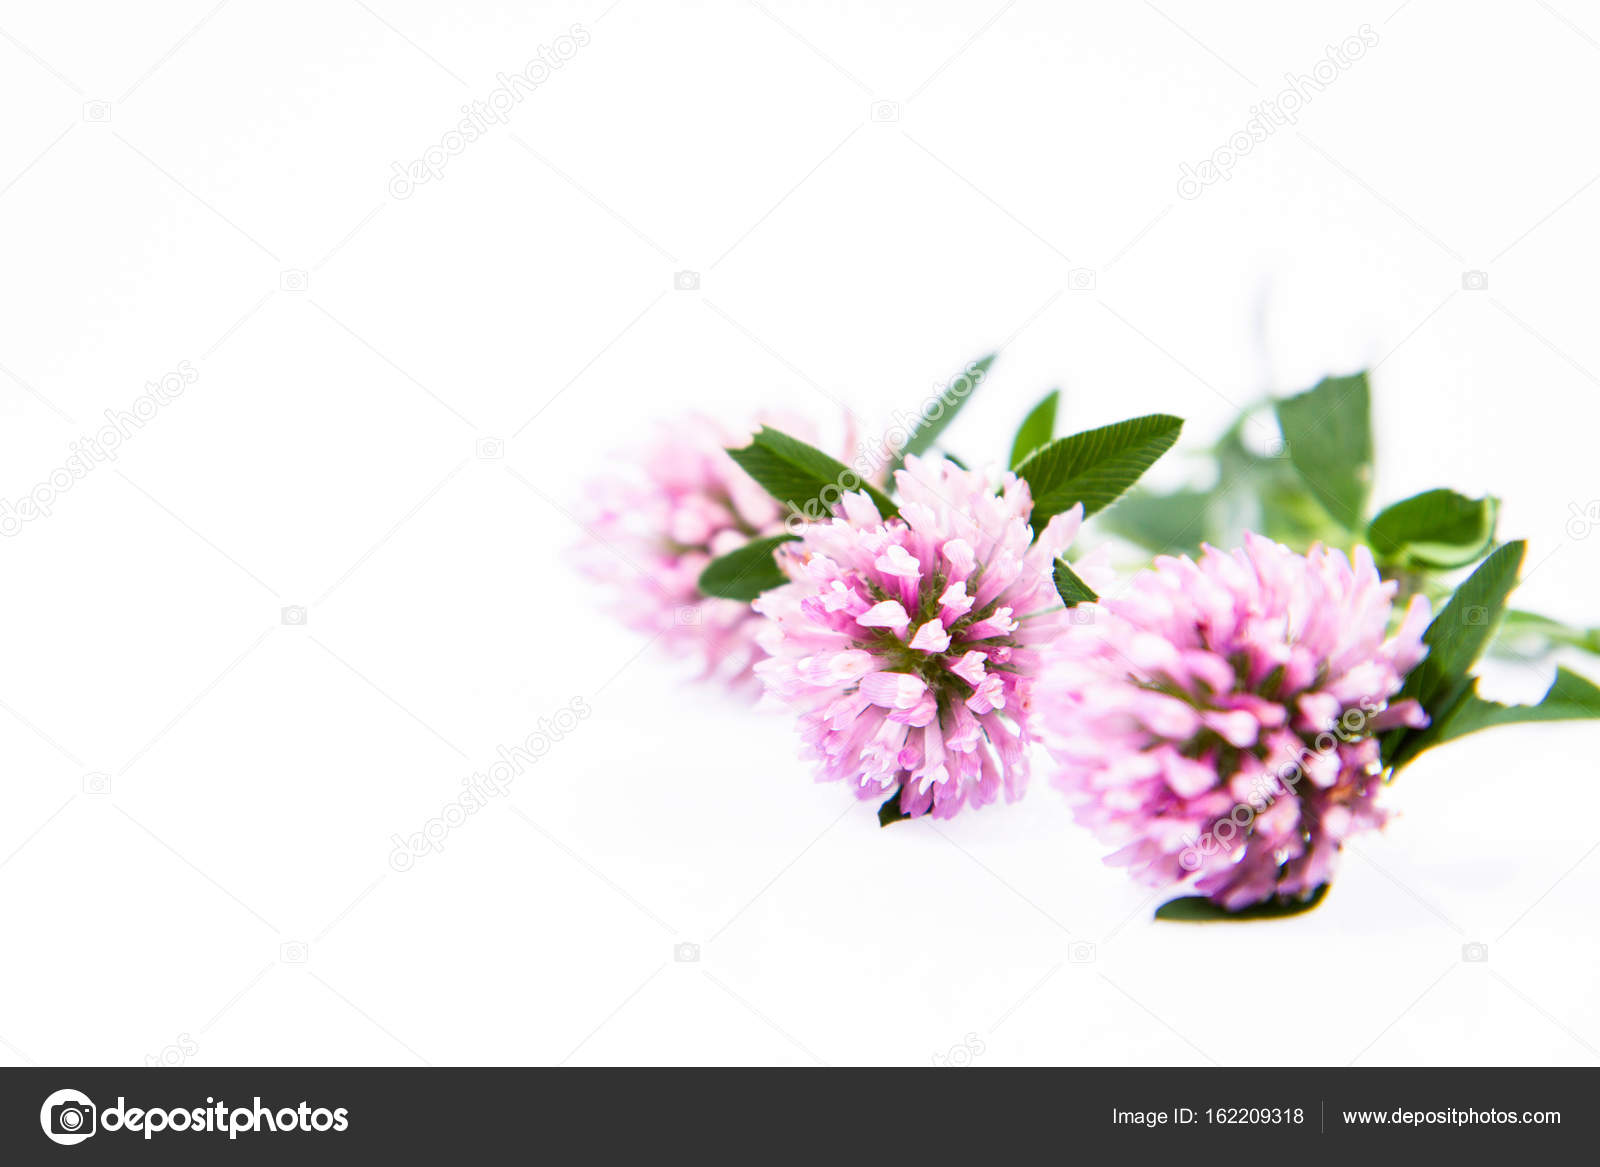 Pink Clover Flowers Stock Photo Teine26 162209318